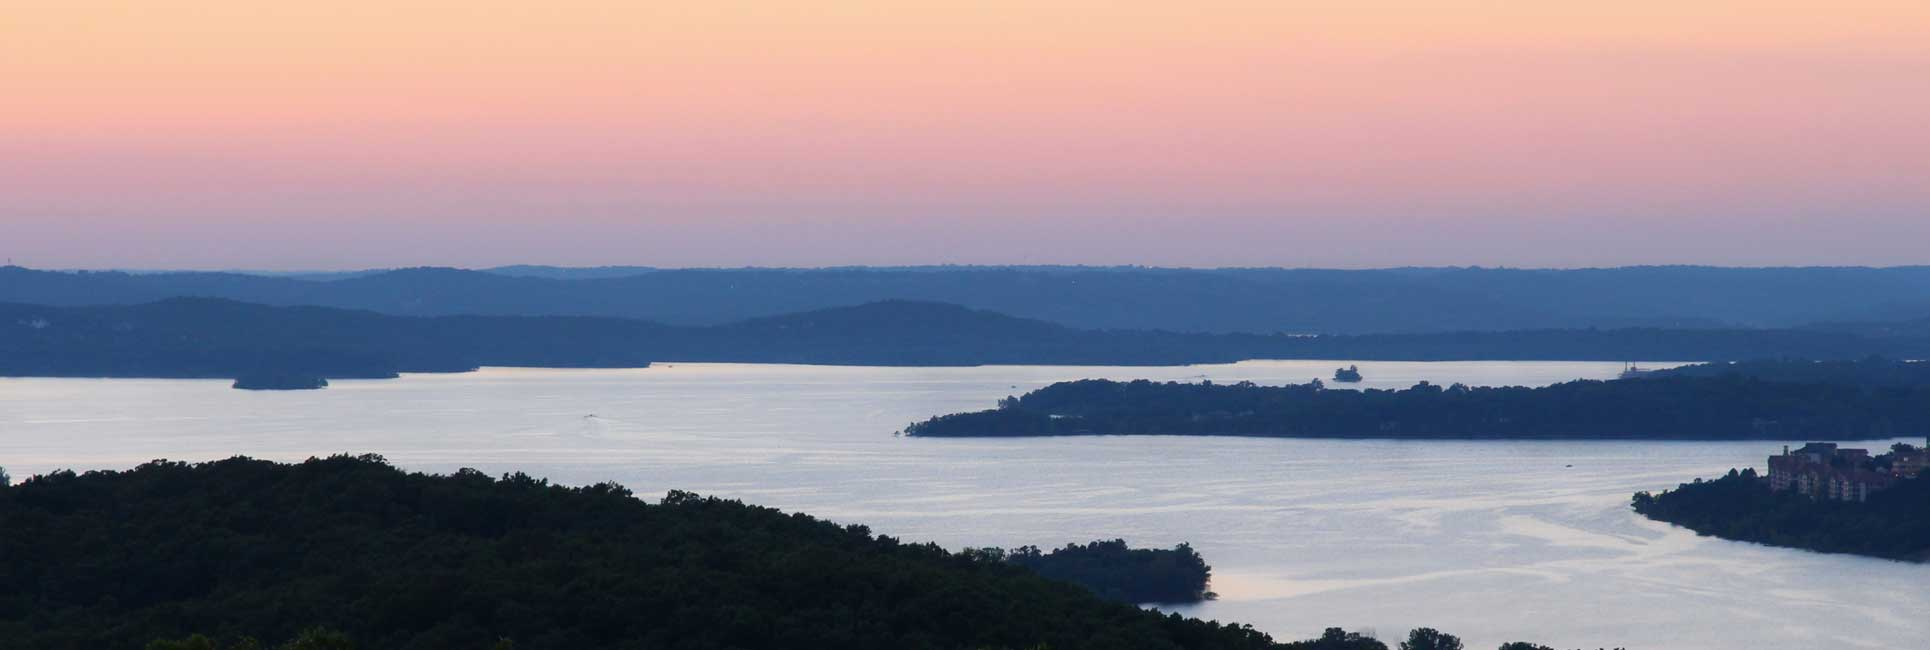 An aerial view of table rock Lake, MO surrounded by trees with the sunsetting in the distance